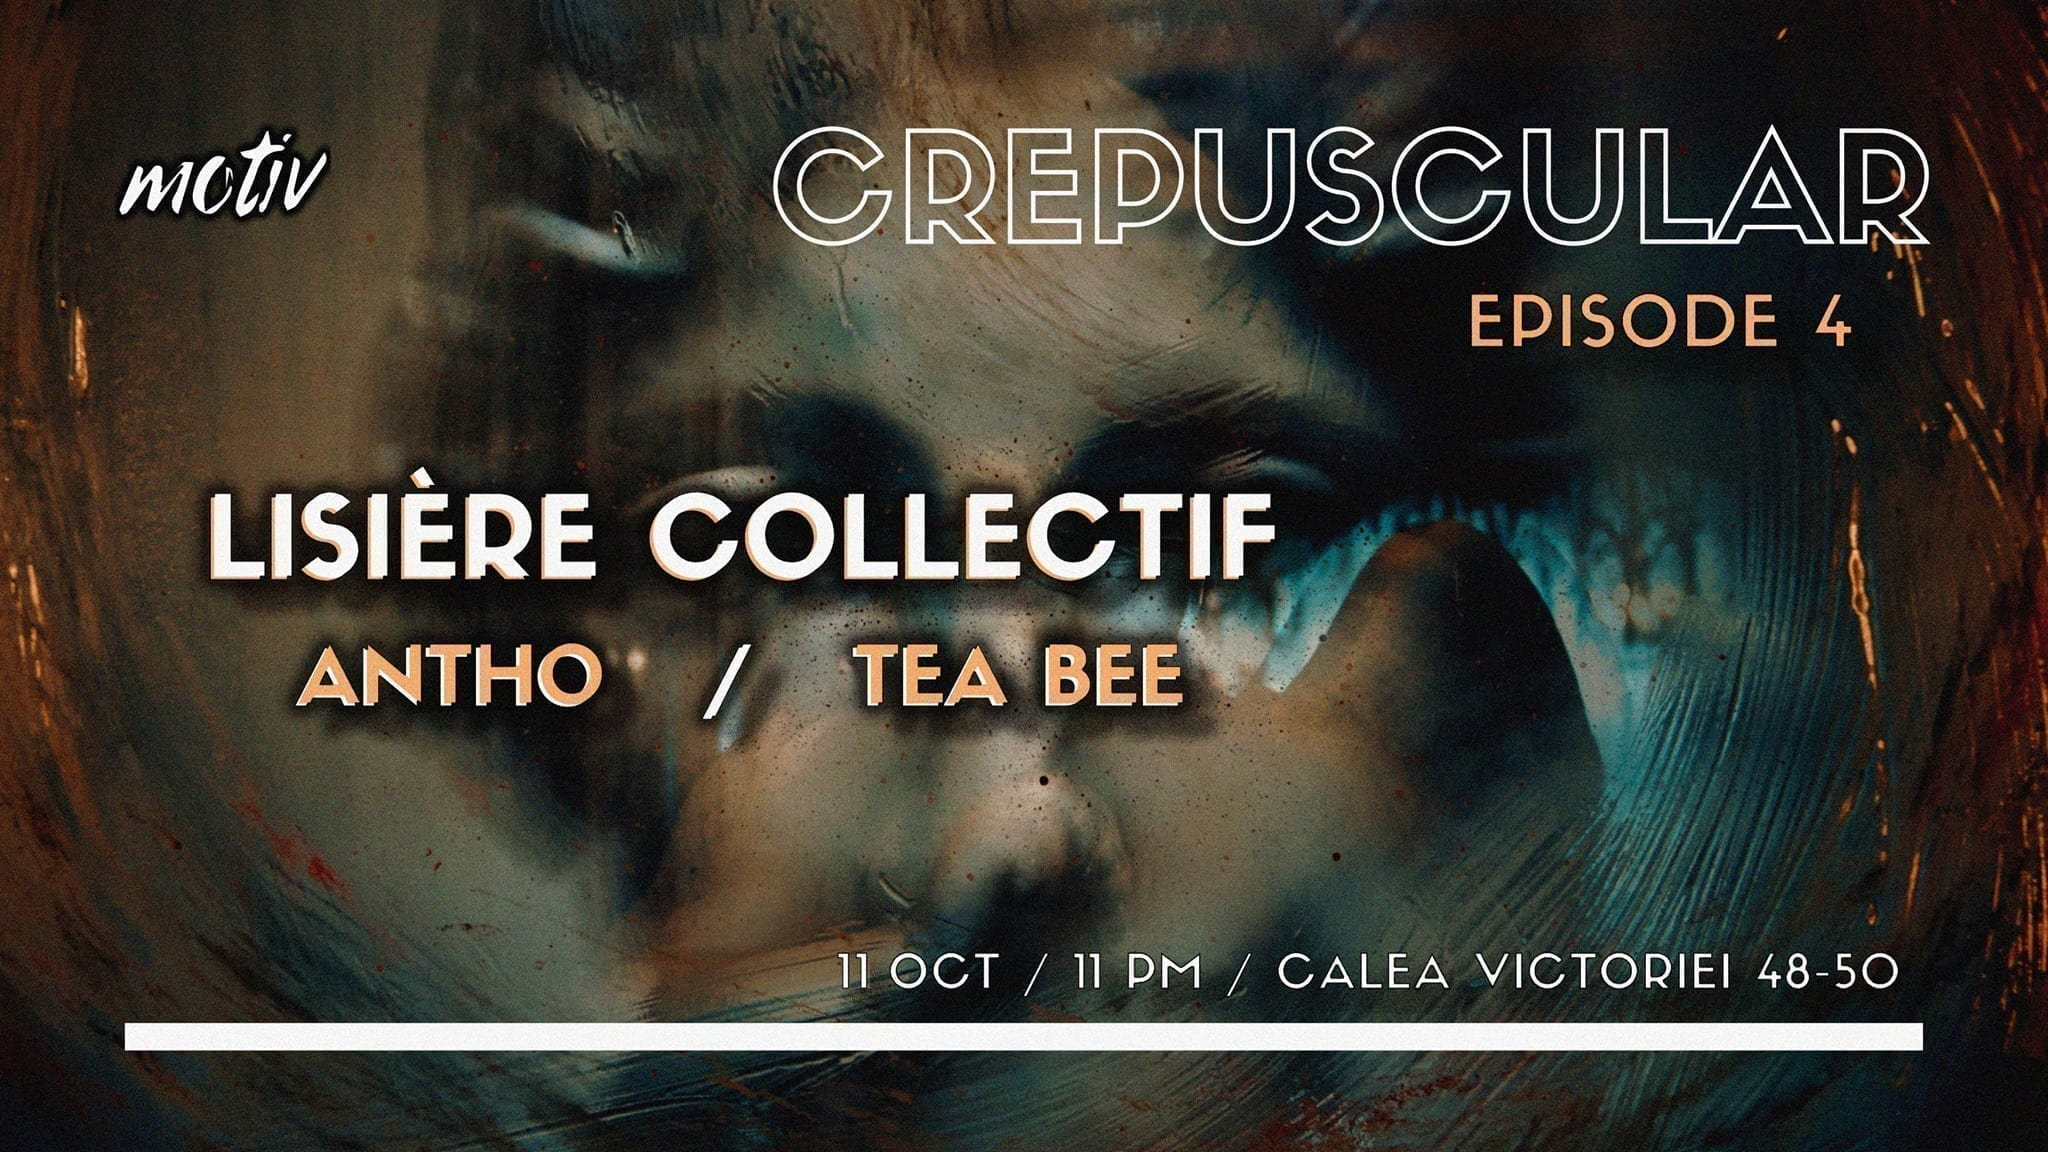 Crepuscular, ep.4 w Lisière Collectif, Antho, Tea Bee